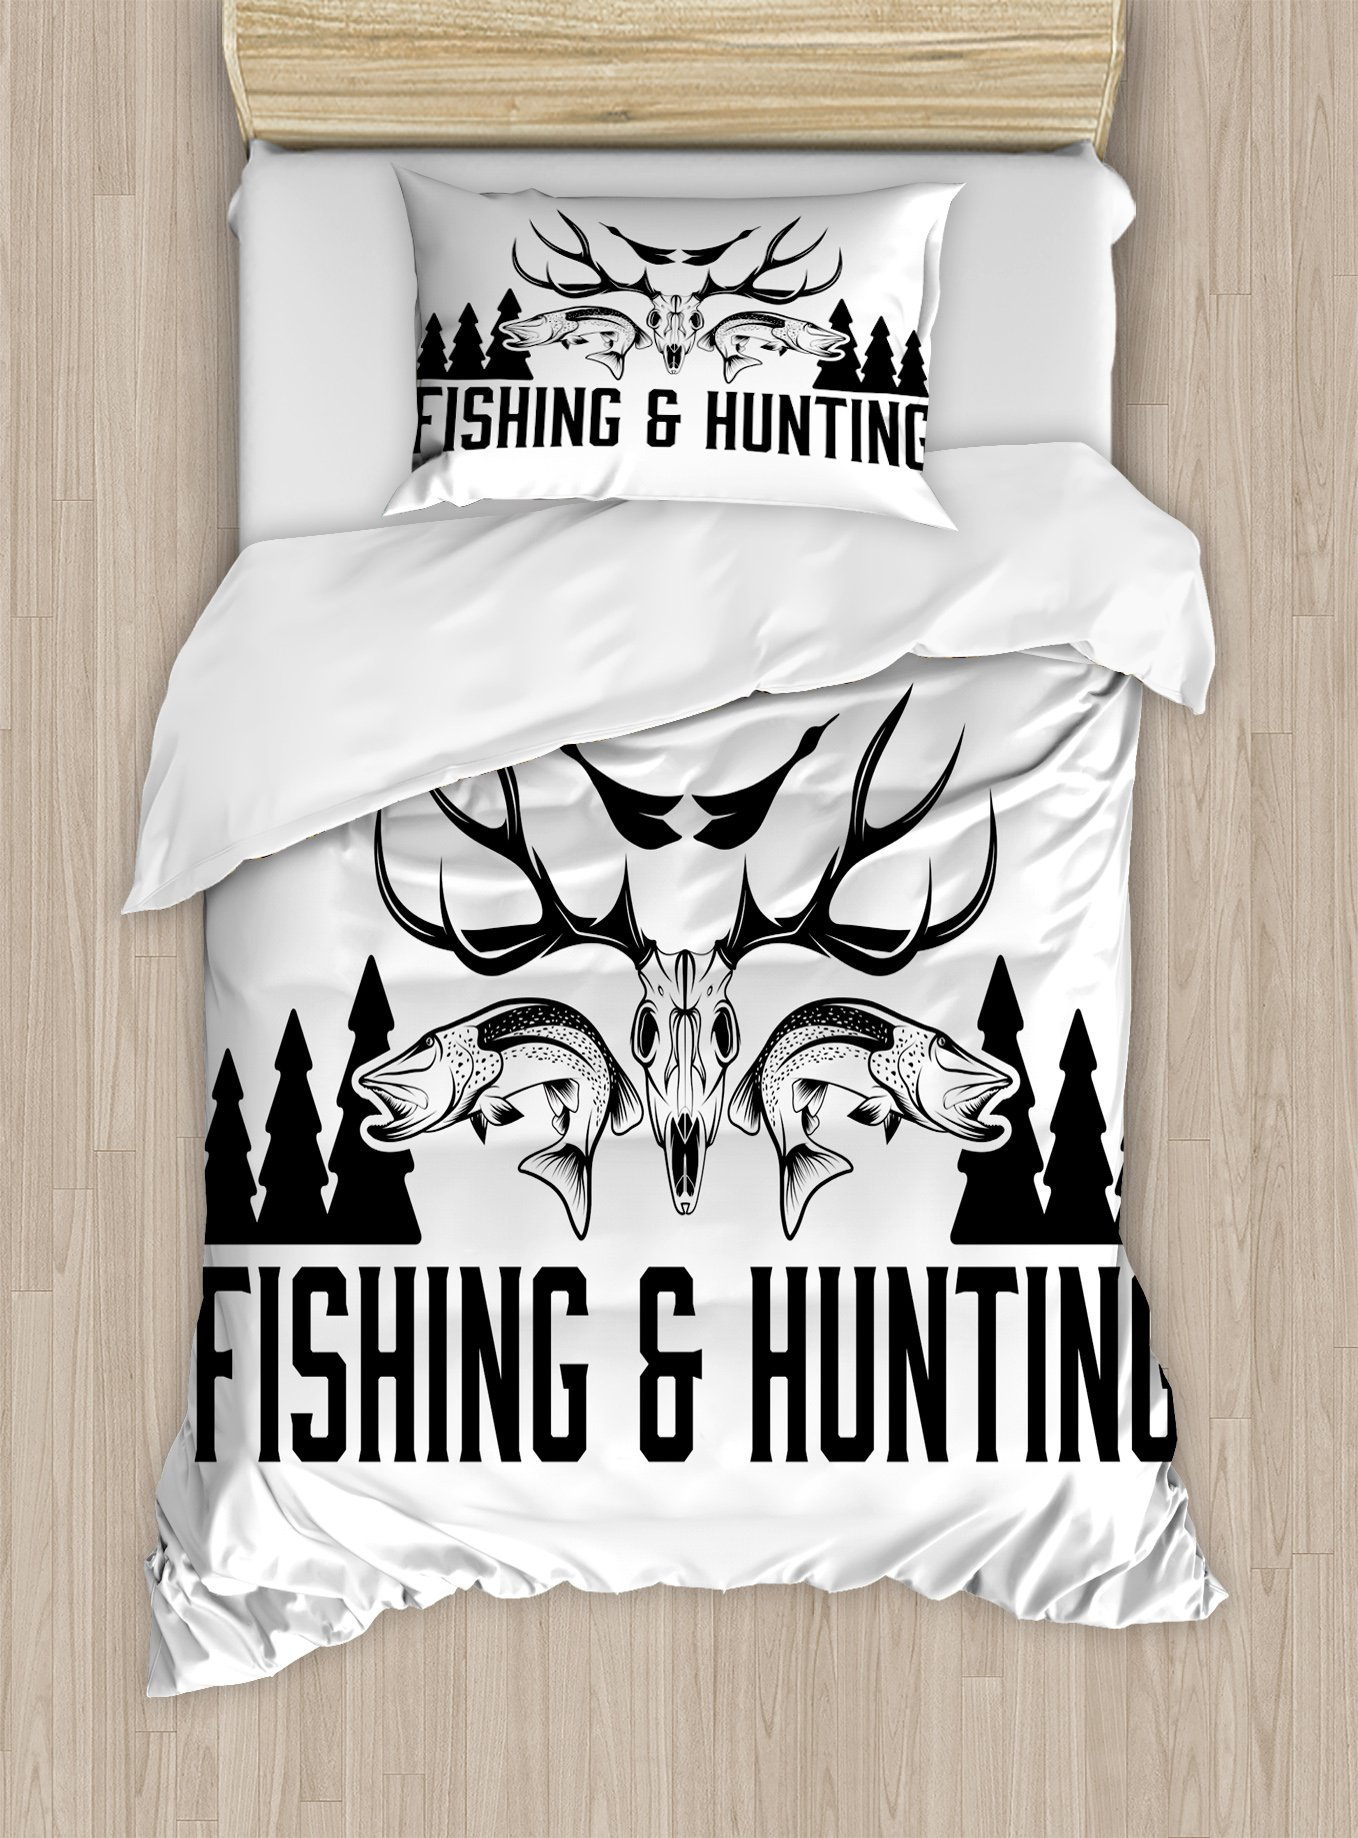 Ambesonne Hunting Duvet Cover Set Twin Size, Hunting and Fishing in Vintage Emblem Design Antler Horns Mallard Pine Tree, Decorative 2 Piece Bedding Set with 1 Pillow Sham, Black and White